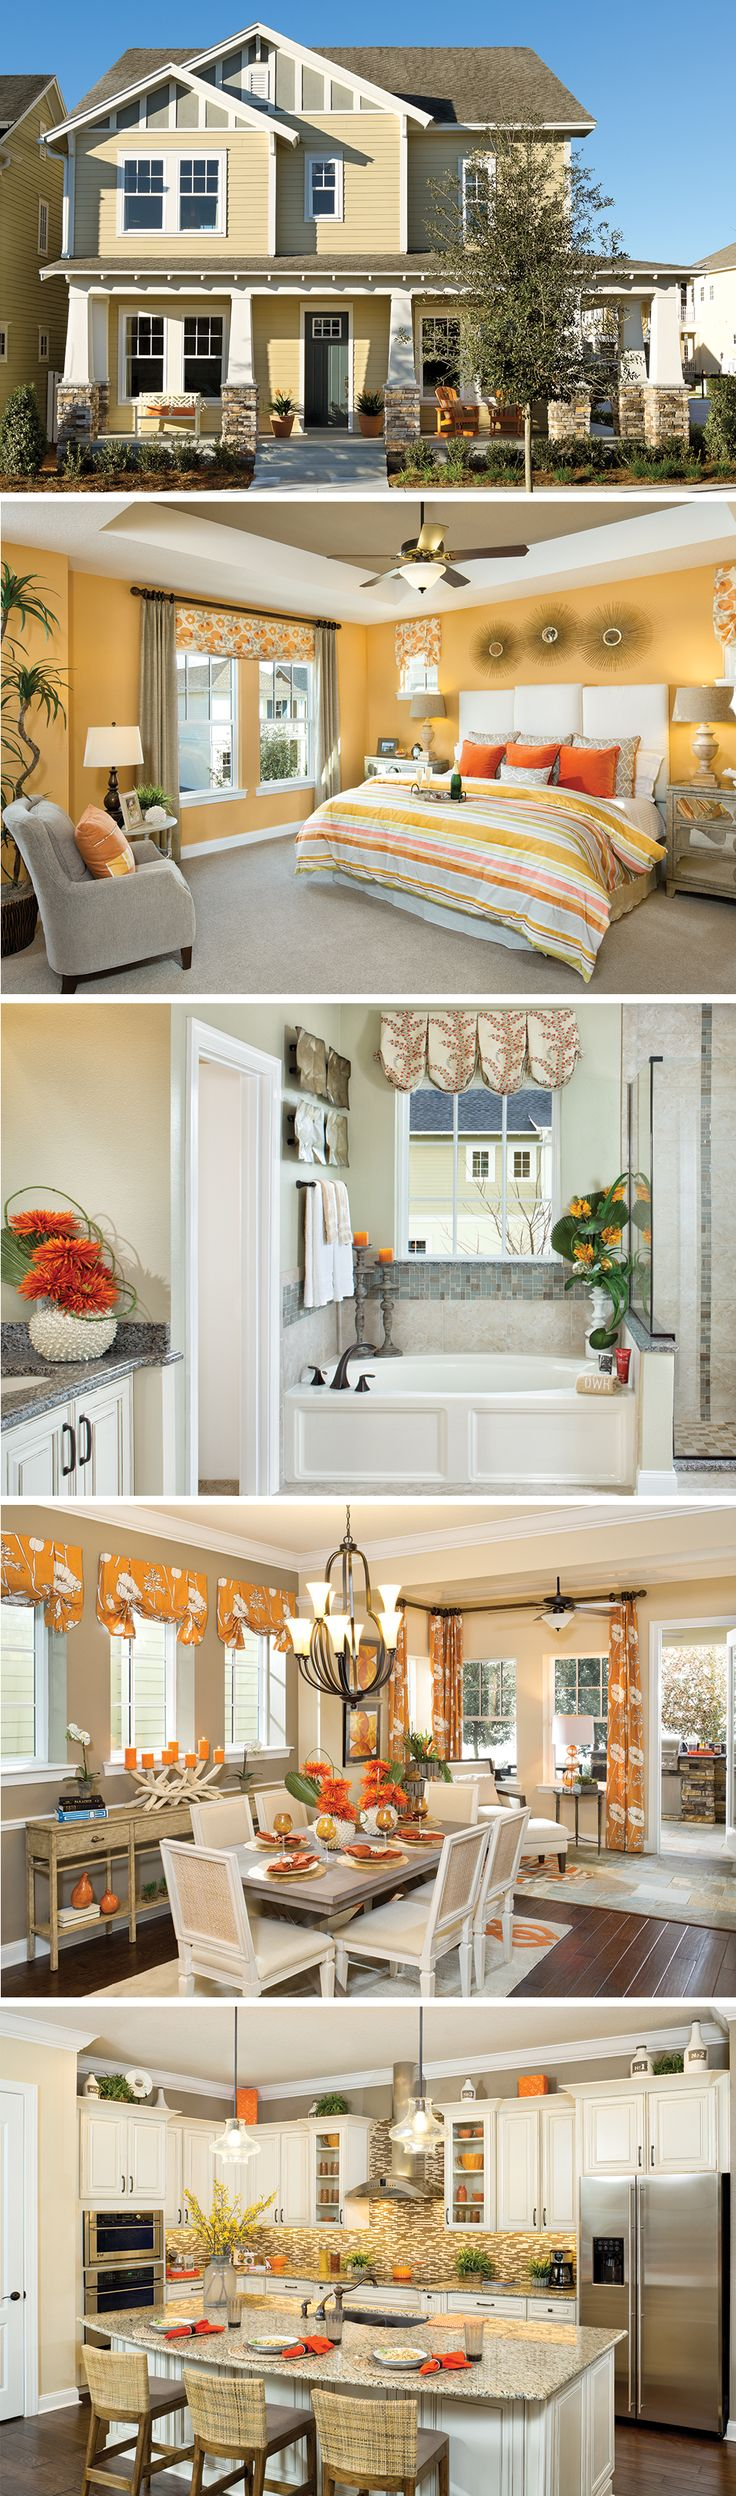 The Riddick by David Weekley Homes in Spring Lake at Celebration is a 3 or 4 bedroom floorplan that features a lanai, a sunroom and a large owners retreat with tray ceilings. Custom home upgrades include a super shower in the master bath, sliding glass doors at the lanai, or an adjusted kitchen layout to fit your needs.